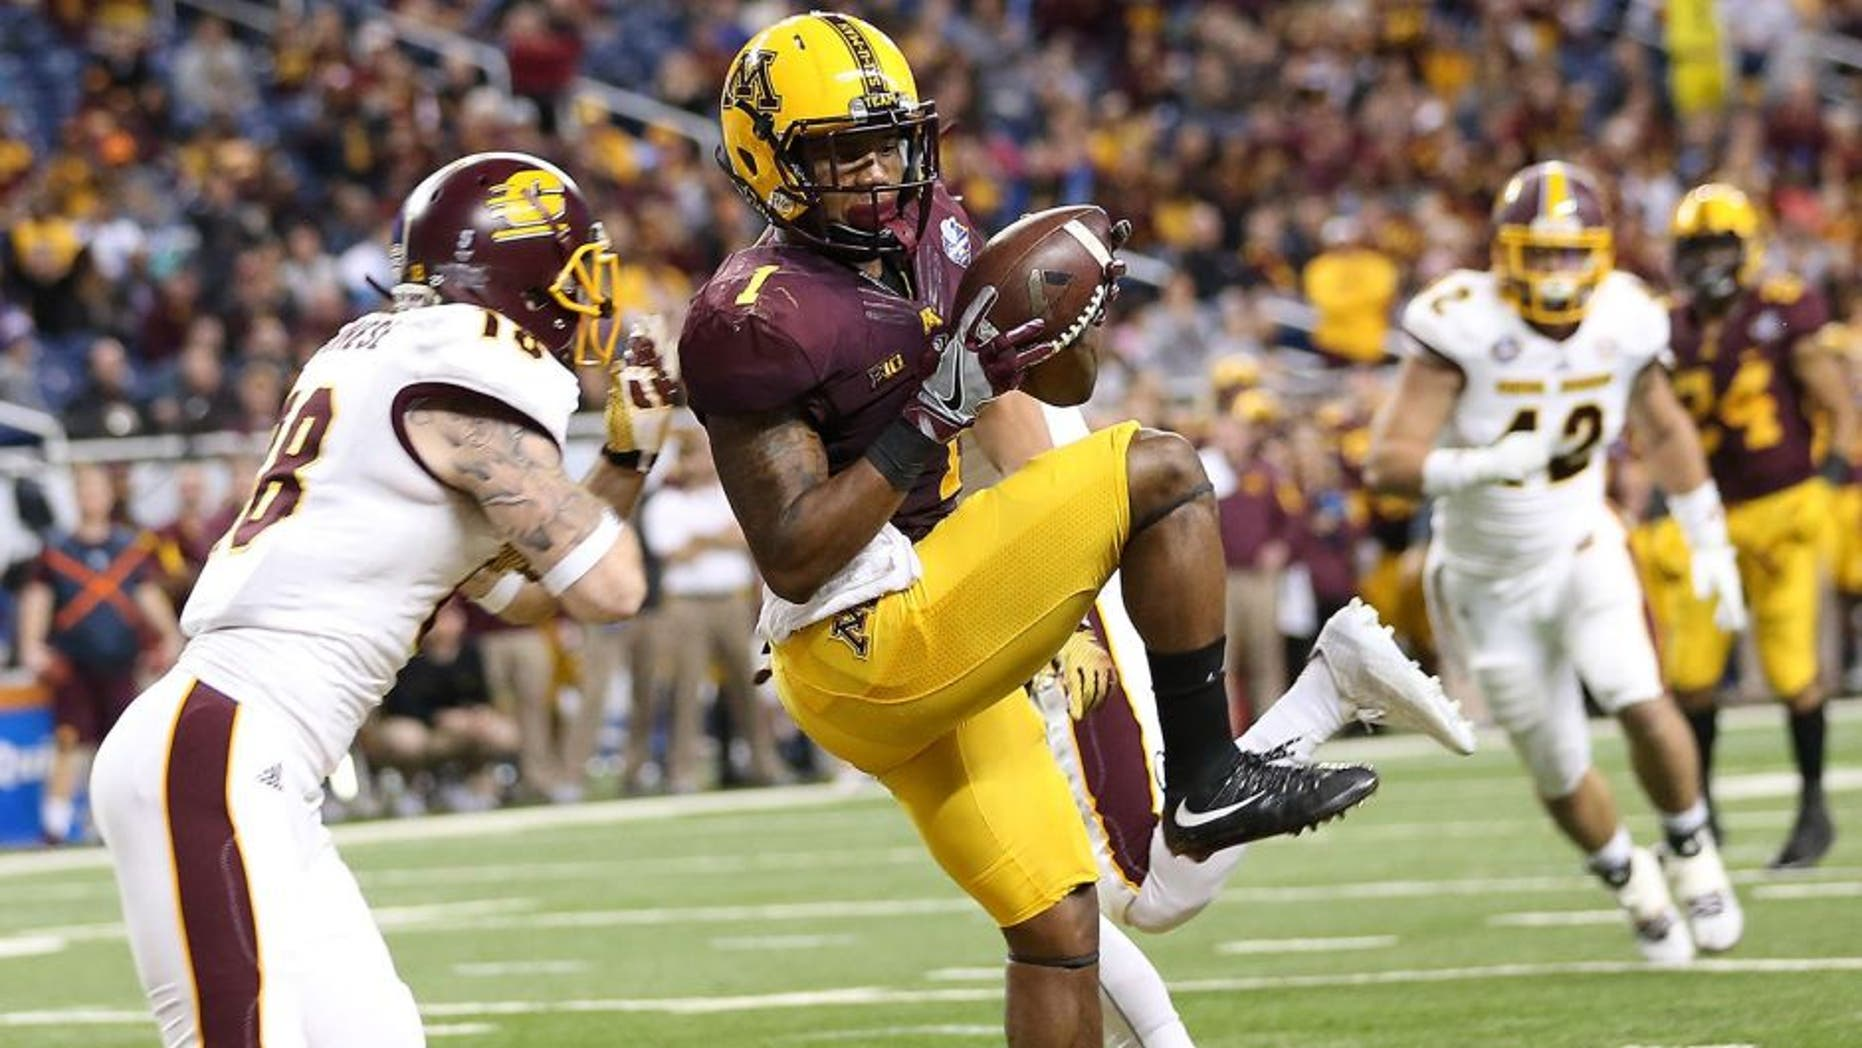 DETROIT MI - DECEMBER 28: KJ Maye #1 of the Minnesota Golden Gophers makes the catch for a touchdown during the second quarter of the game over Tony Annese #18 of the Central Michigan Chippewas on December 28, 2015 during the Quick Lane Bowl at Ford Field in Detroit, Michigan. (Photo by Leon Halip/Getty Images)